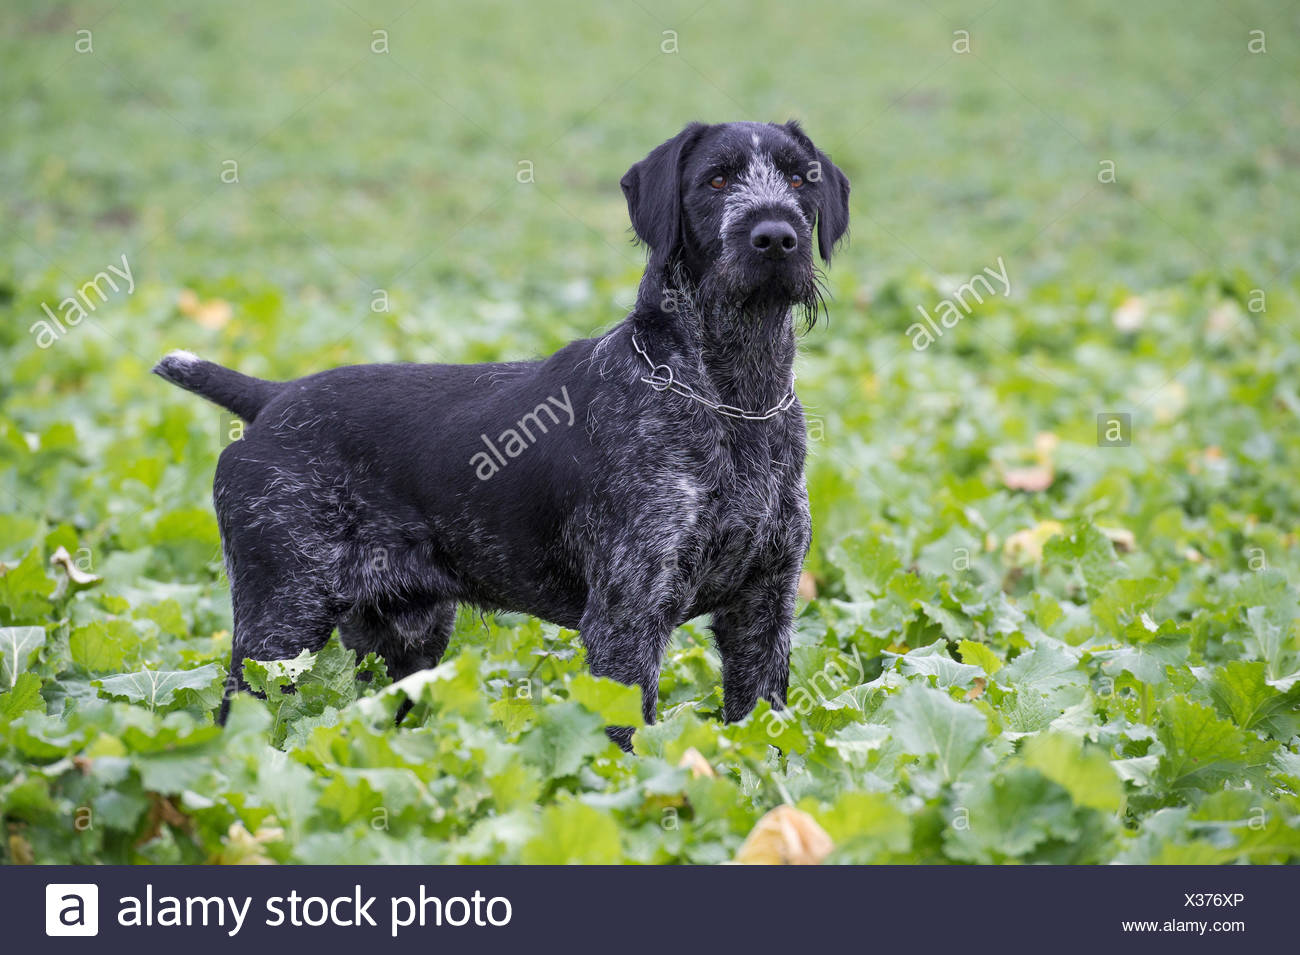 hunting dog at a hunting in arkeburg, goldenstedt, vechta district, niedersachsen, germany, 2013 - Stock Image